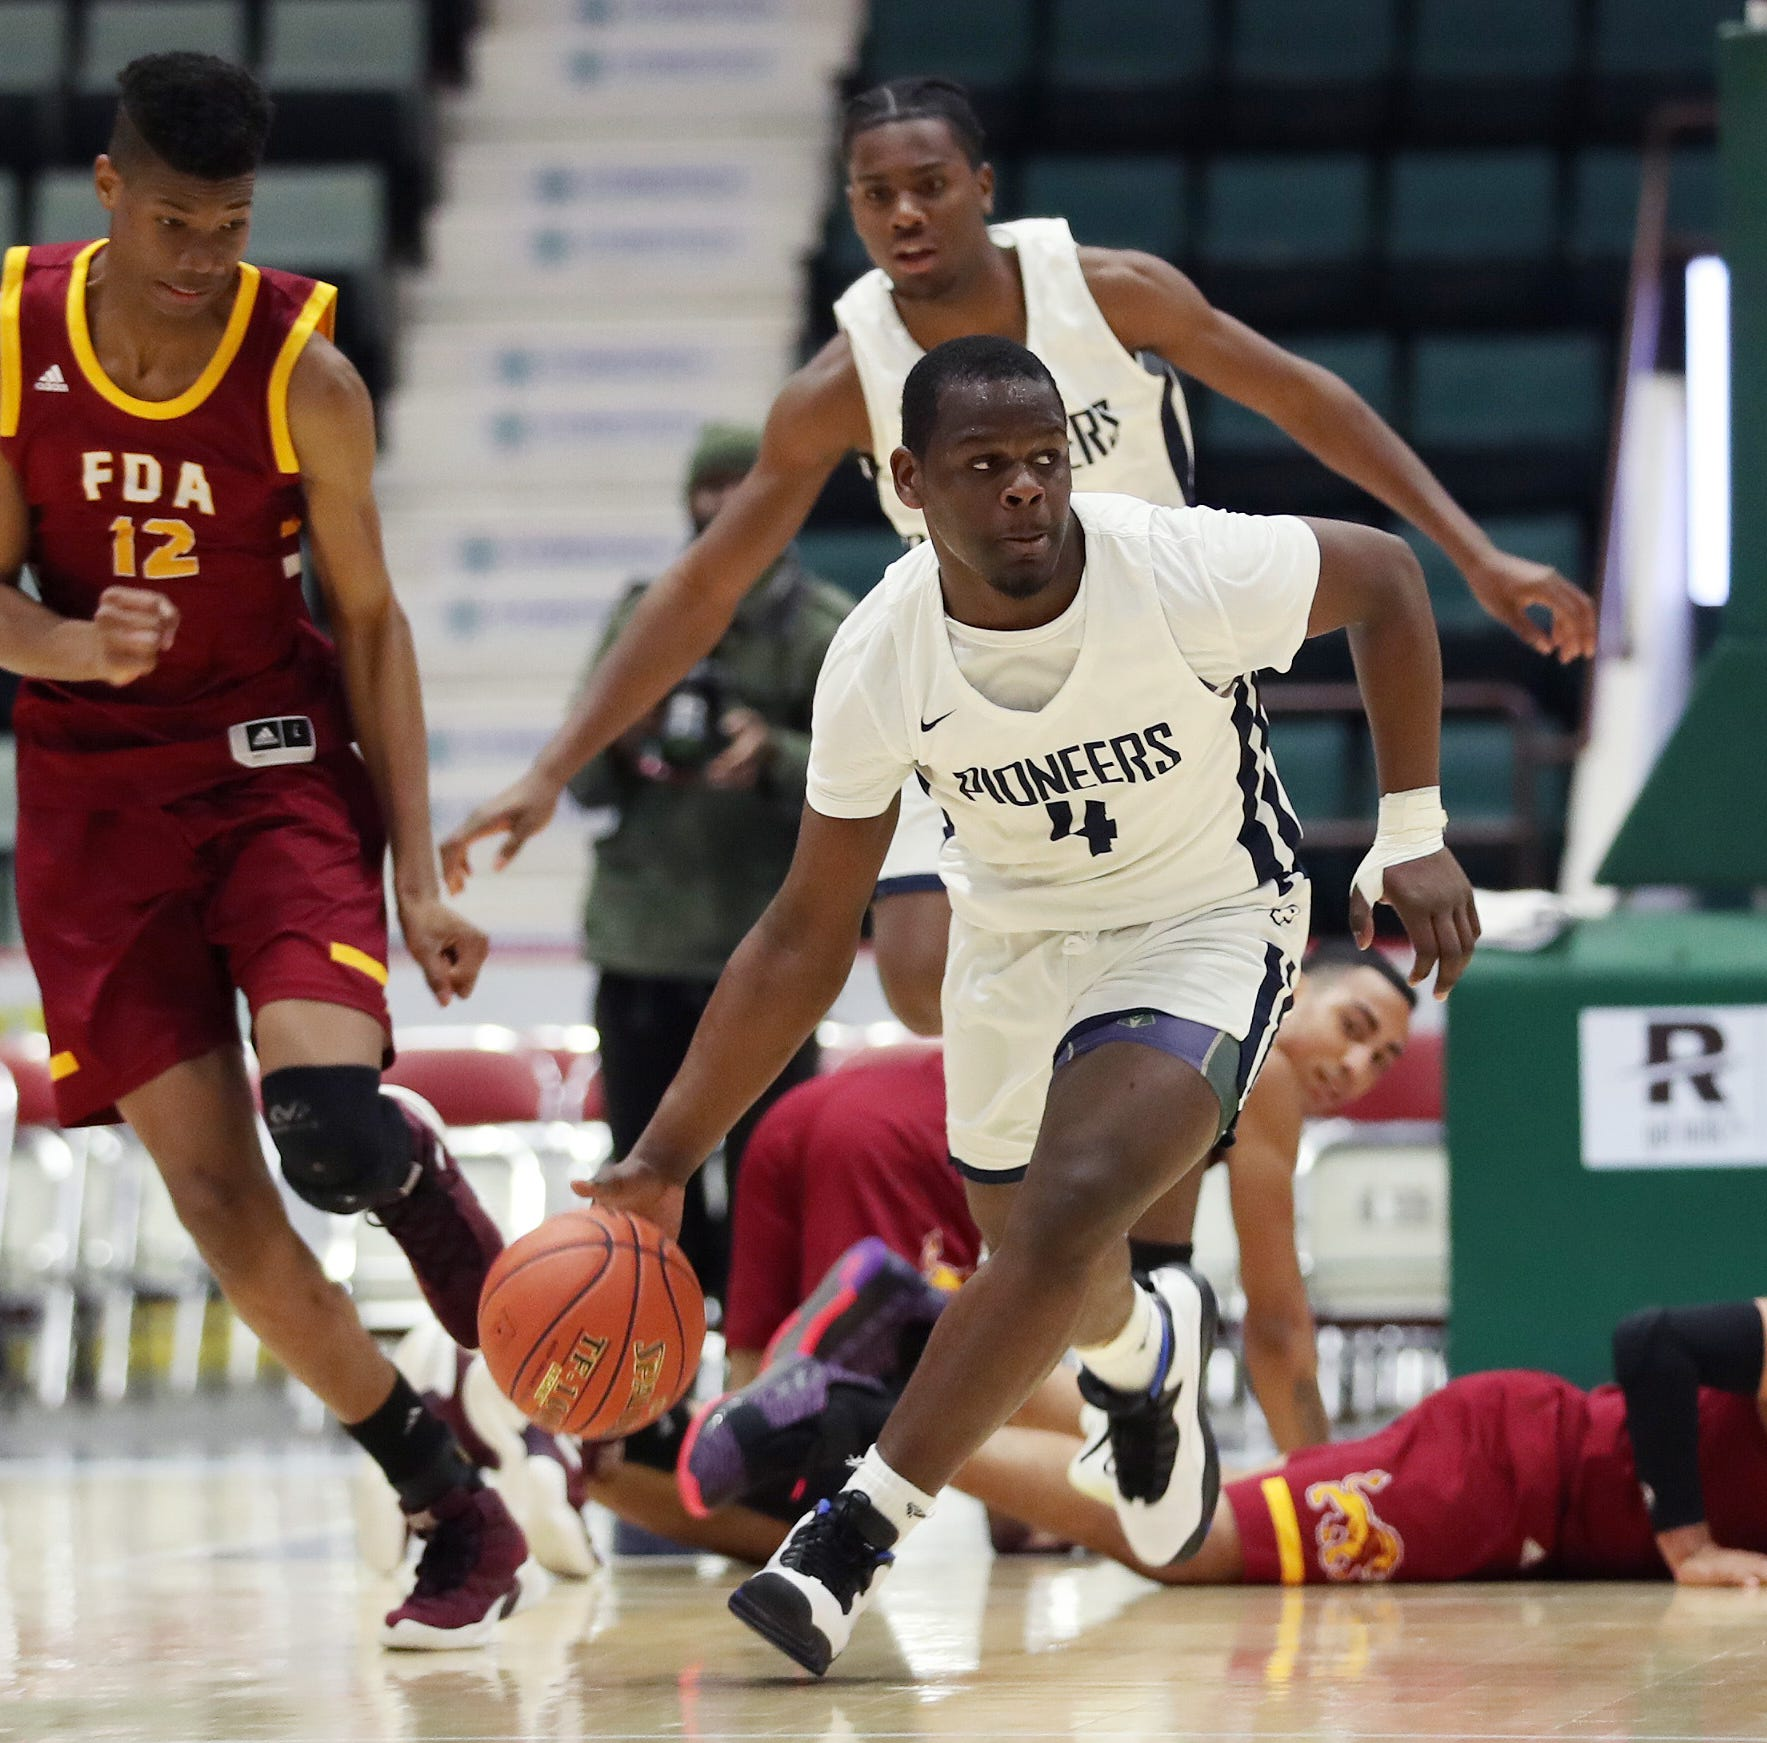 Boys basketball rankings: State champ Poughkeepsie ends on top